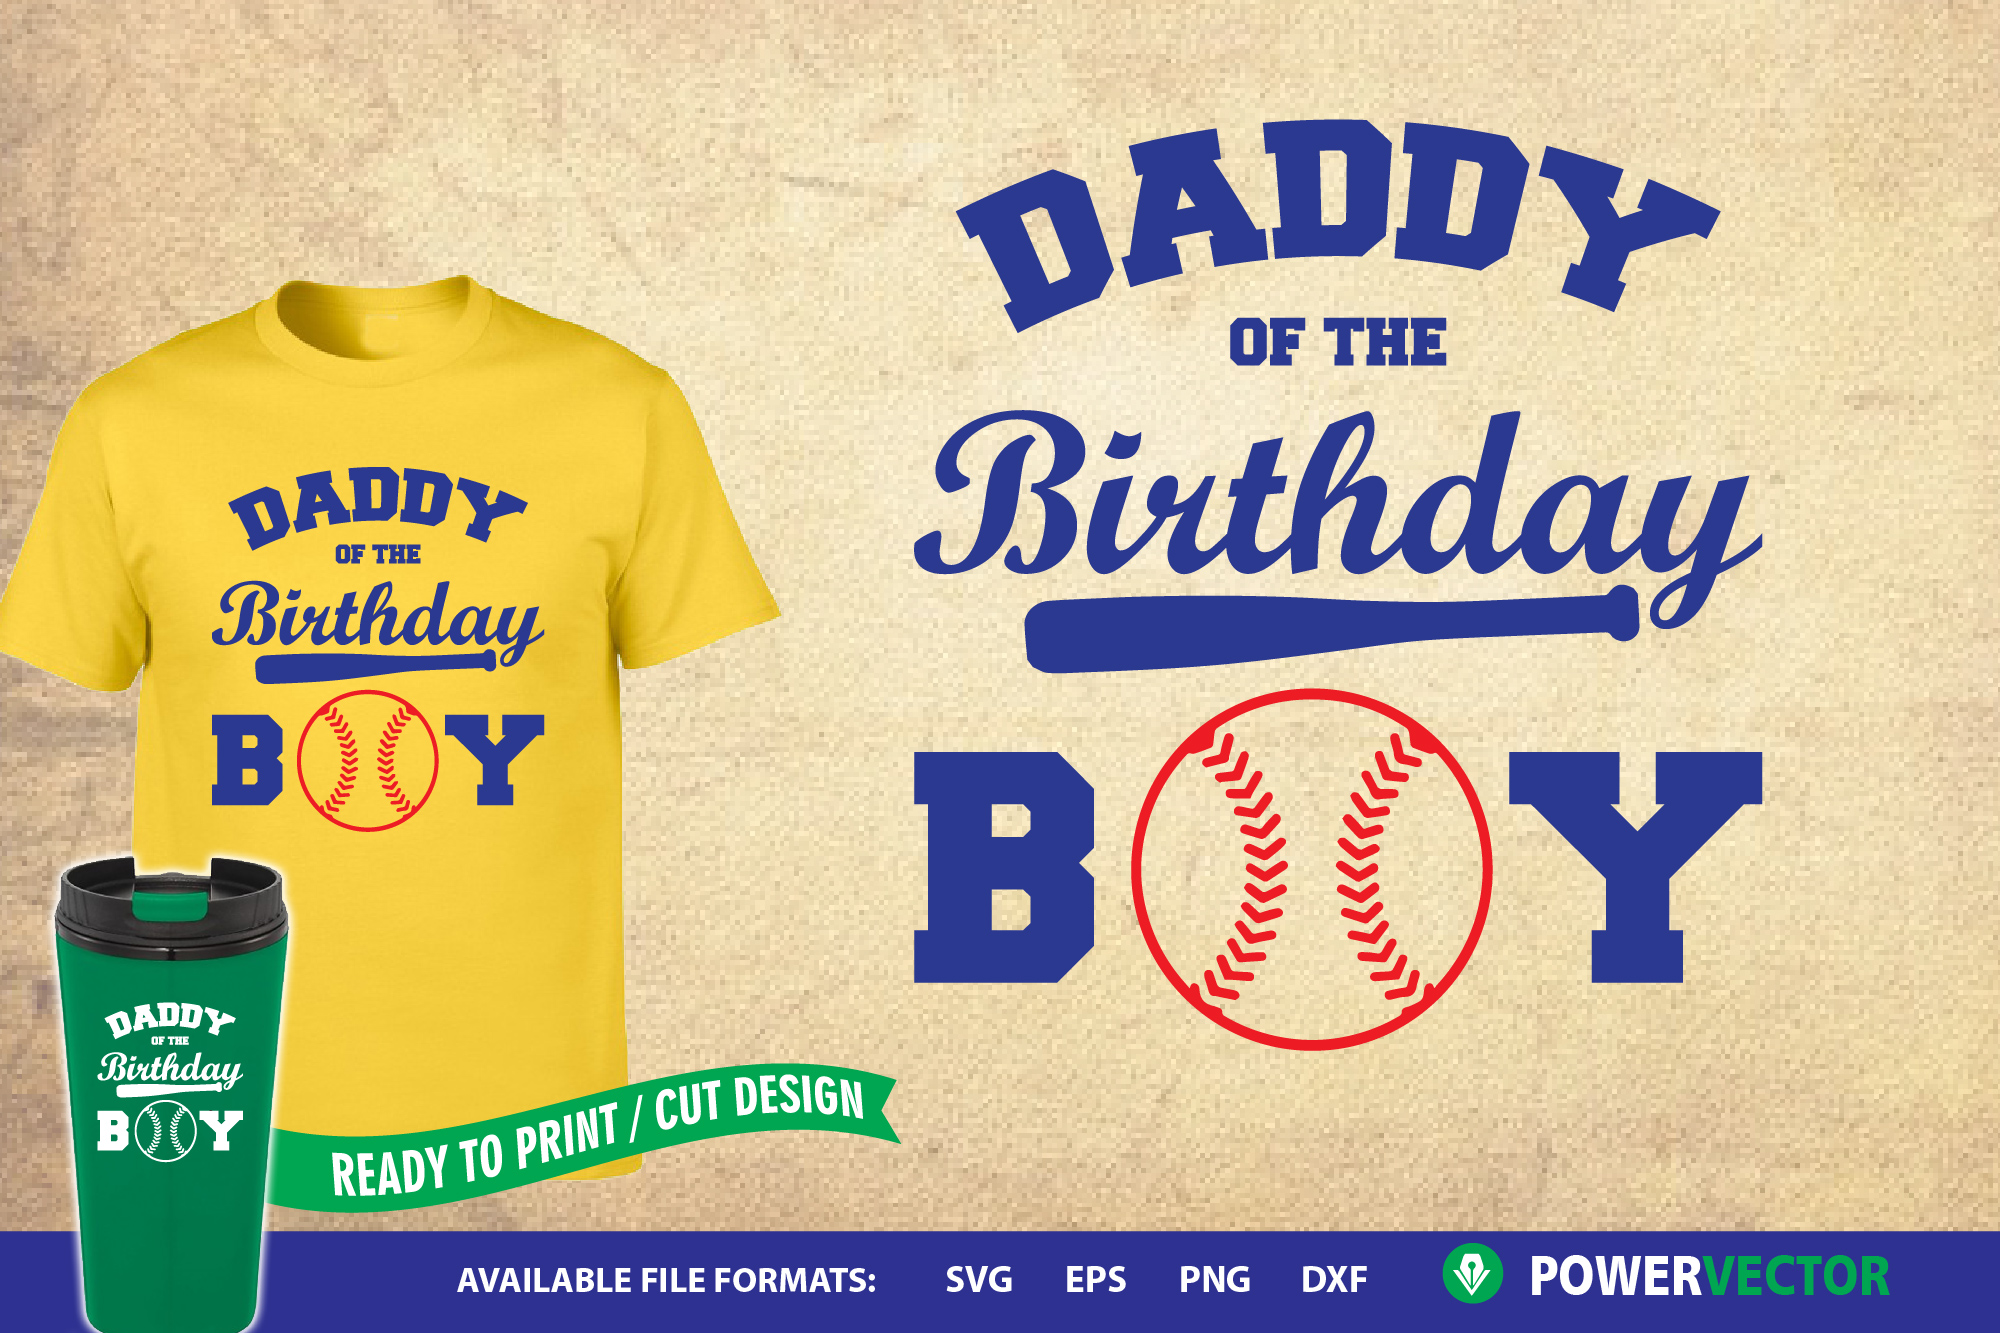 Download Free Daddy Of The Birthday Boy Svg Design Graphic By Powervector for Cricut Explore, Silhouette and other cutting machines.